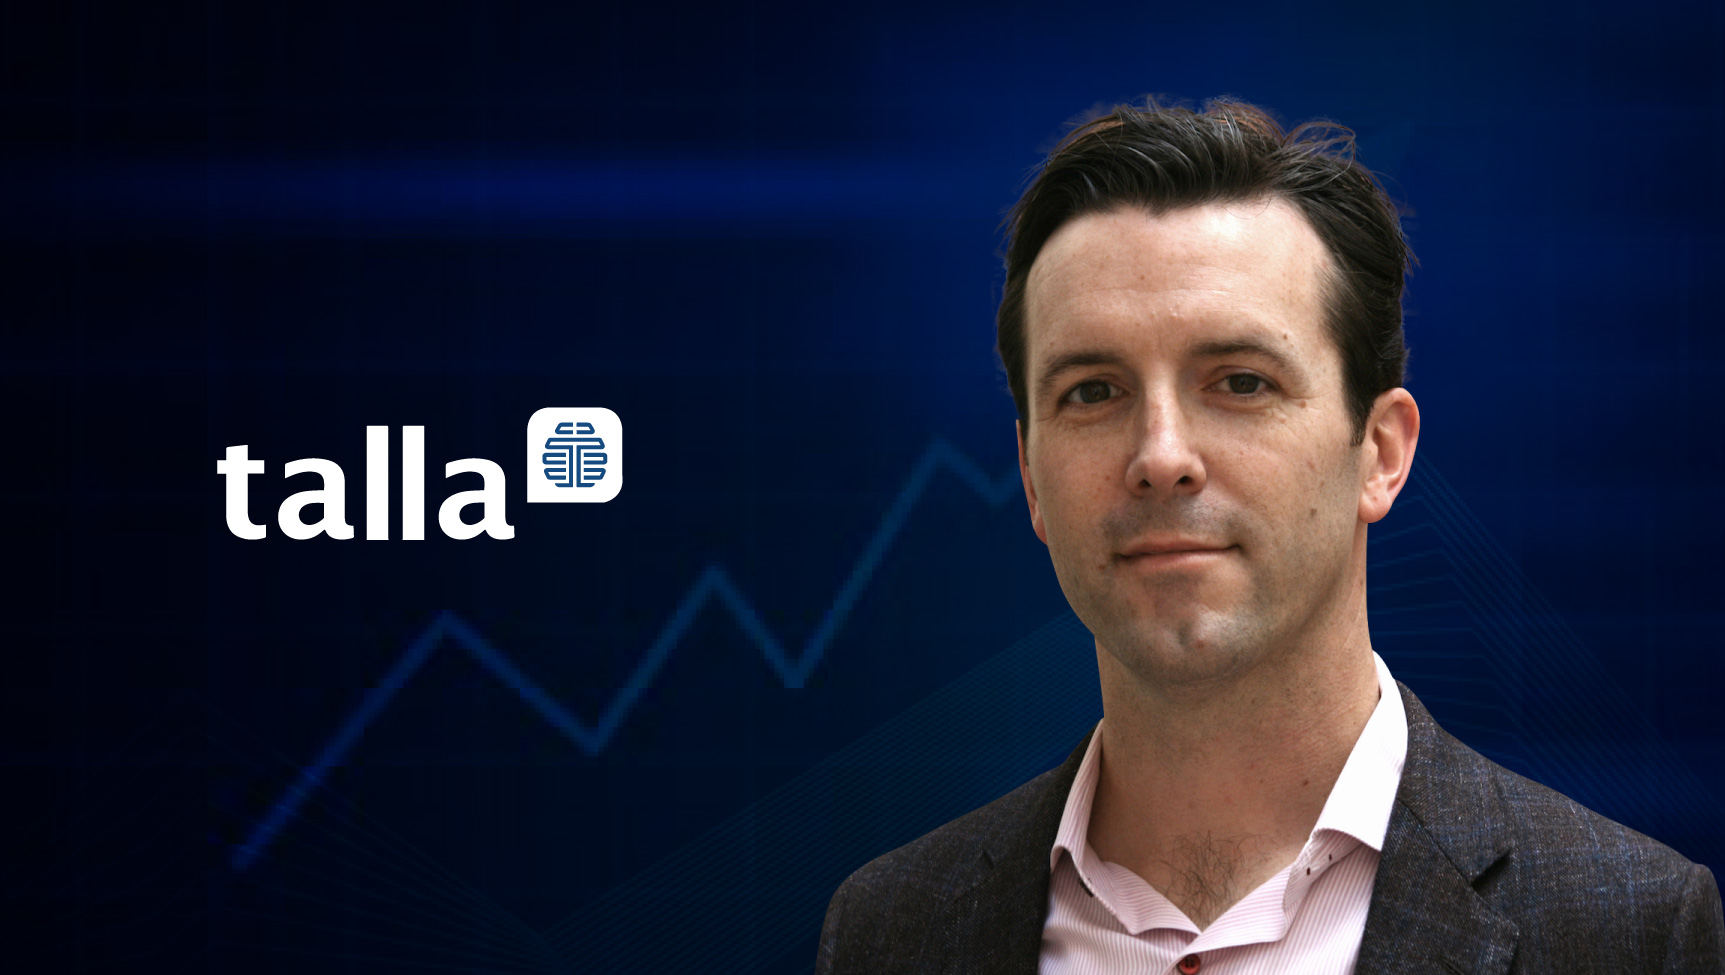 SalesTech Interview with Rob May, CEO and Co-founder at Talla